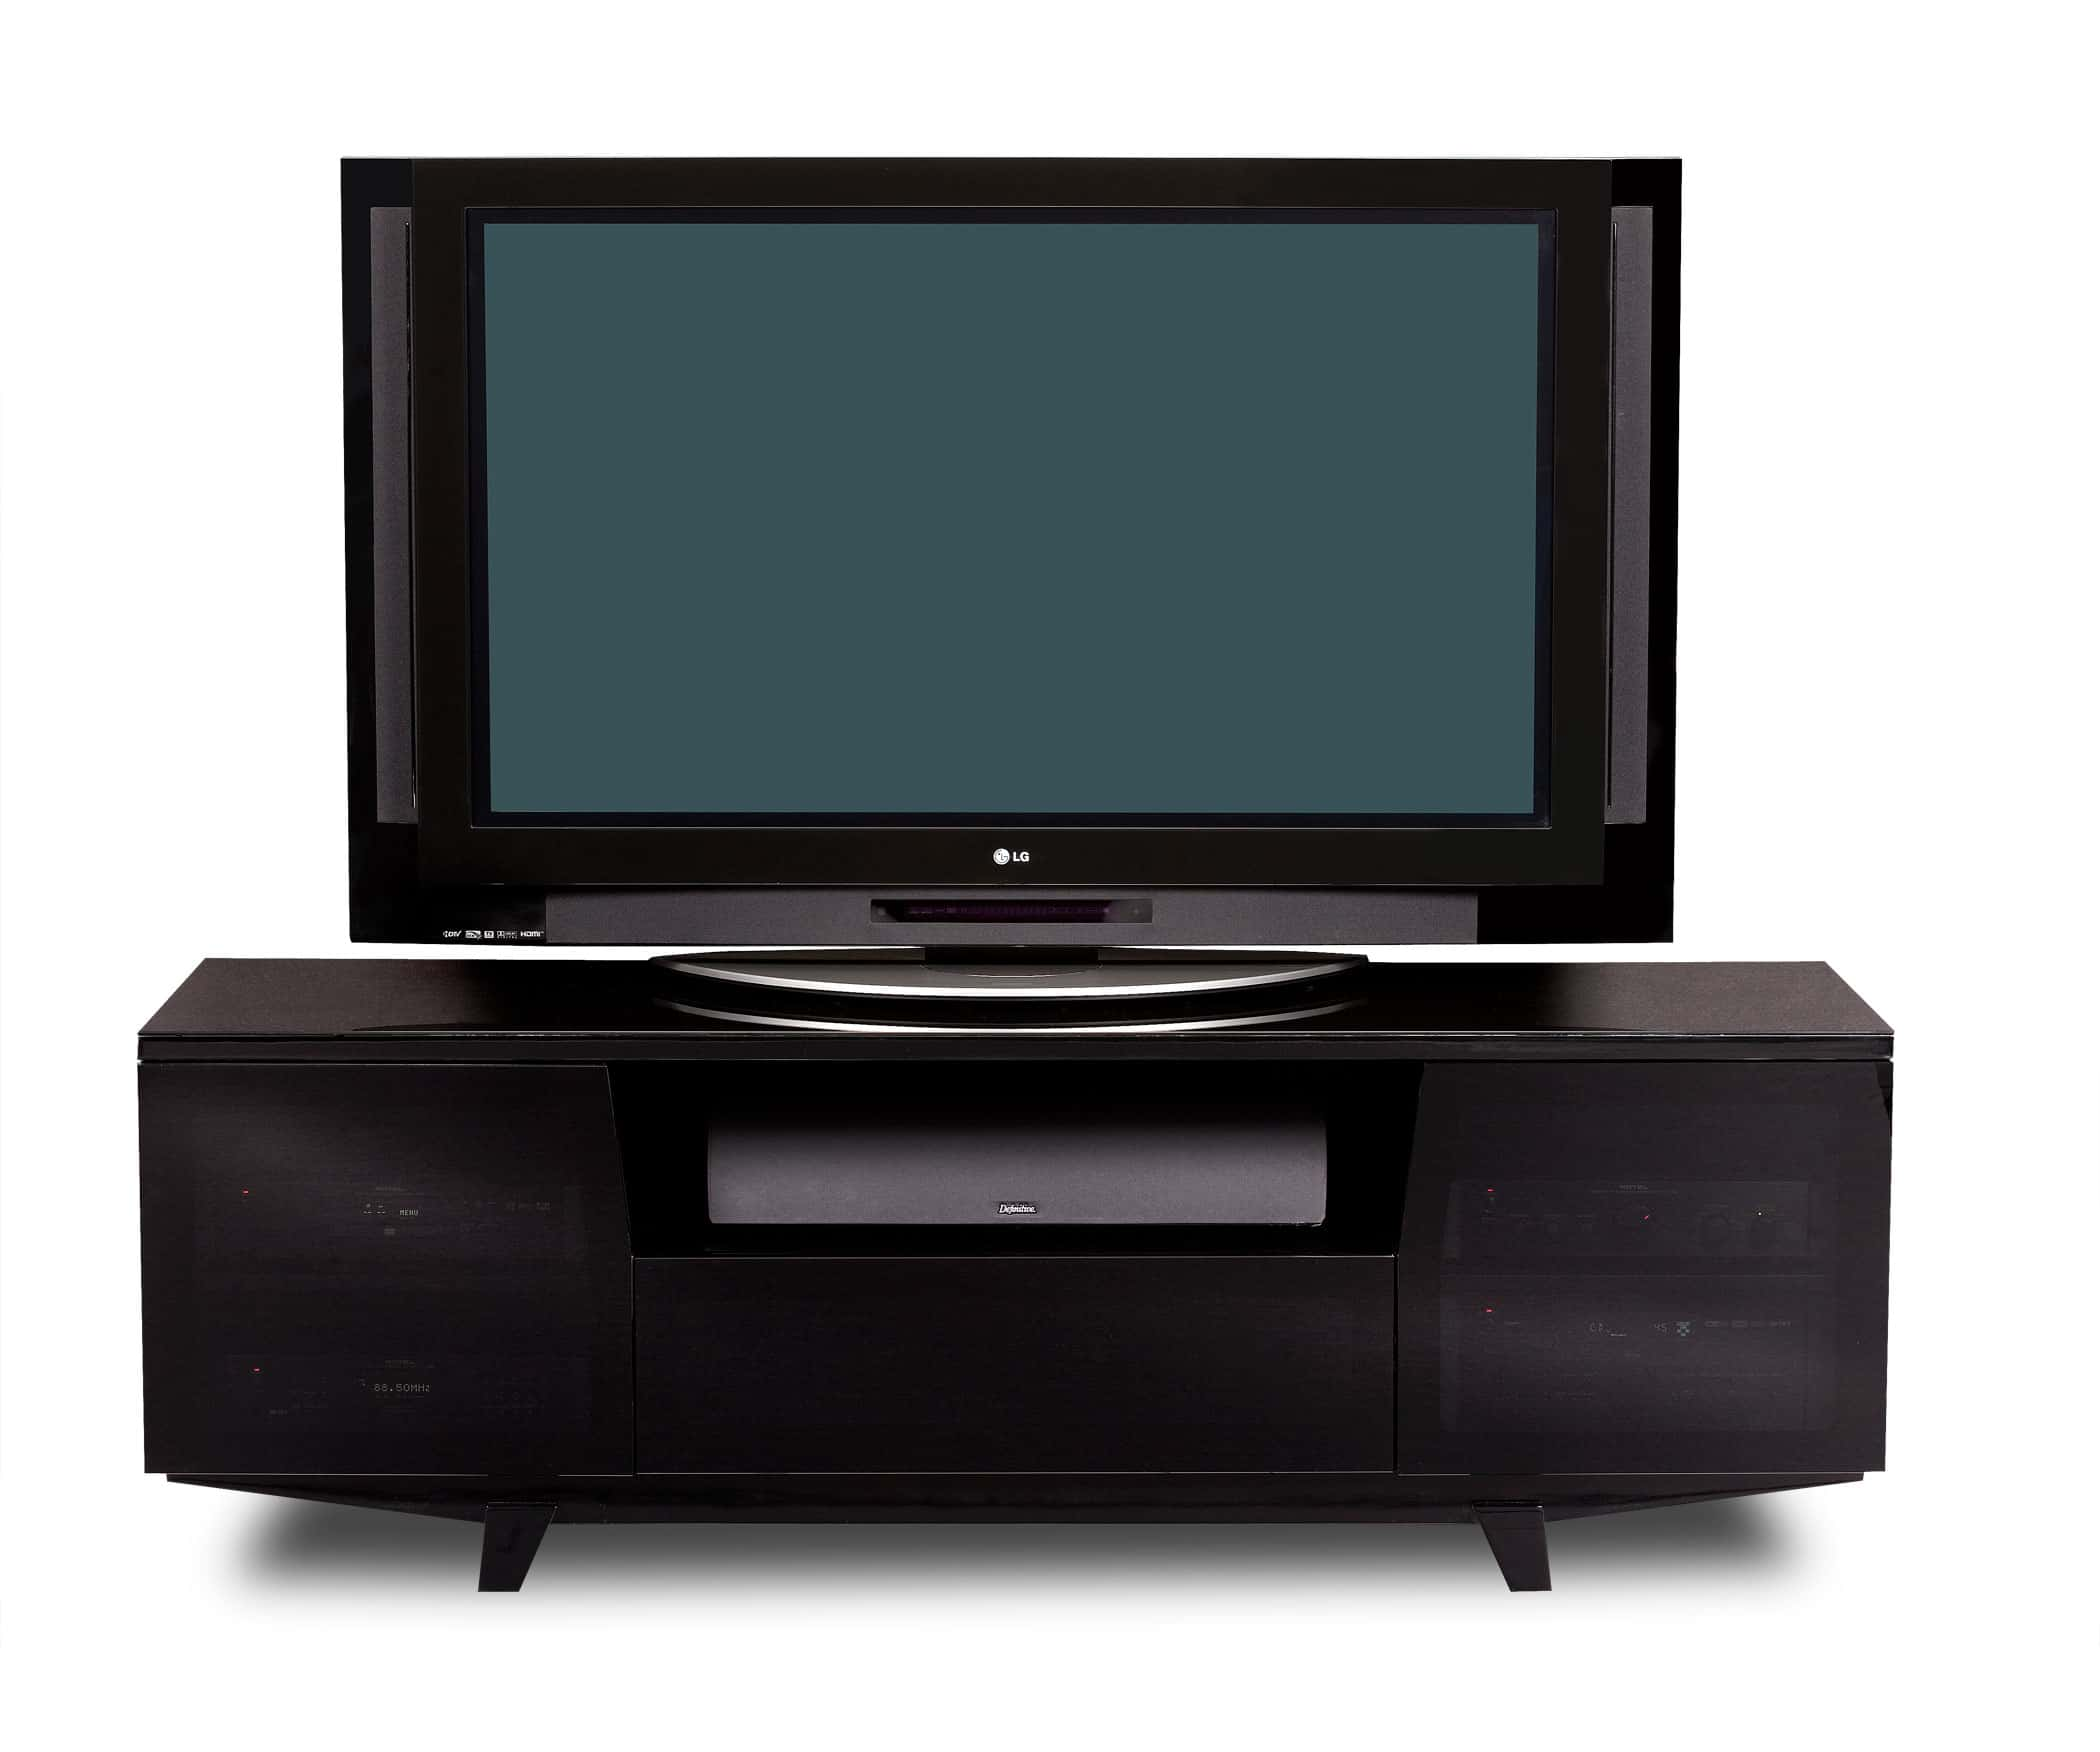 Marina 8729-2 Gloss Black TV Stand & Media Cabinet | BDI Furniture